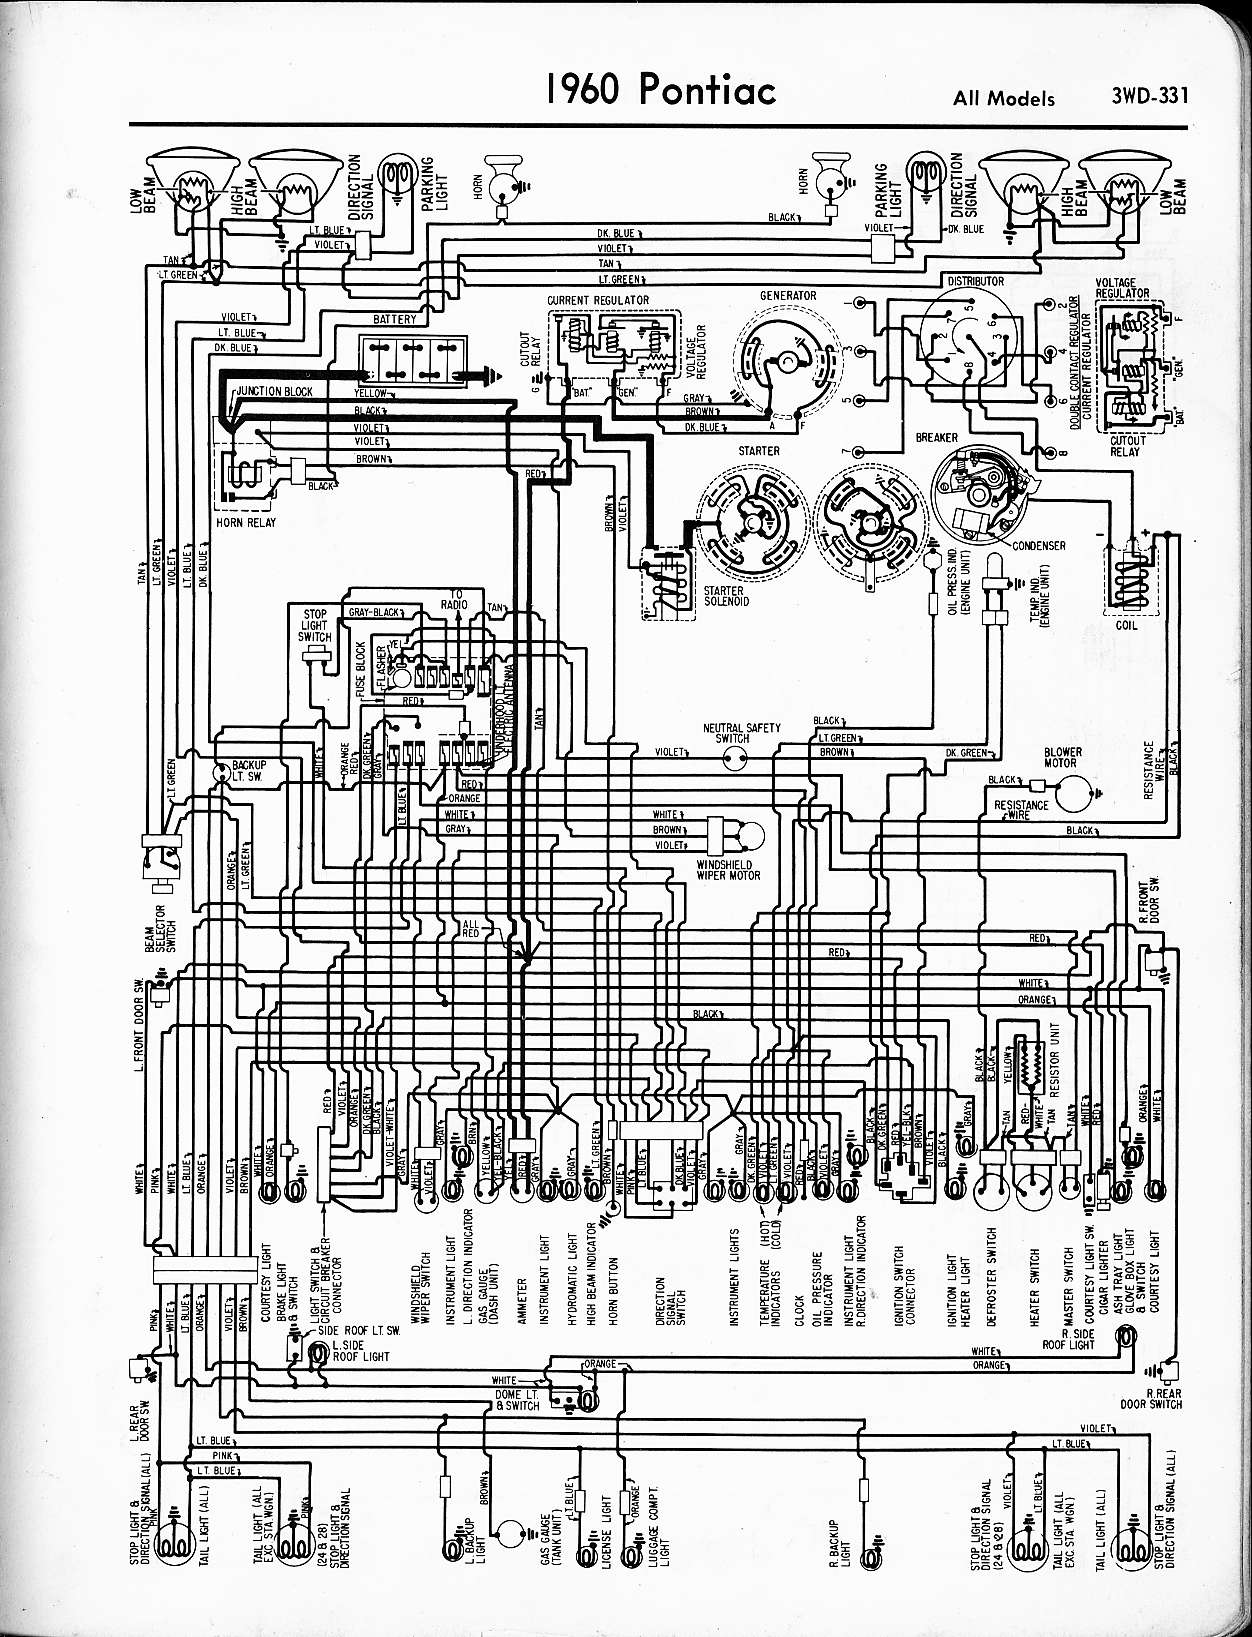 1972 Pontiac Lemans Engine Wiring Just Another Diagram Blog 1975 Fender Stratocaster 1963 Catalina Library Rh 78 Akszer Eu 1976